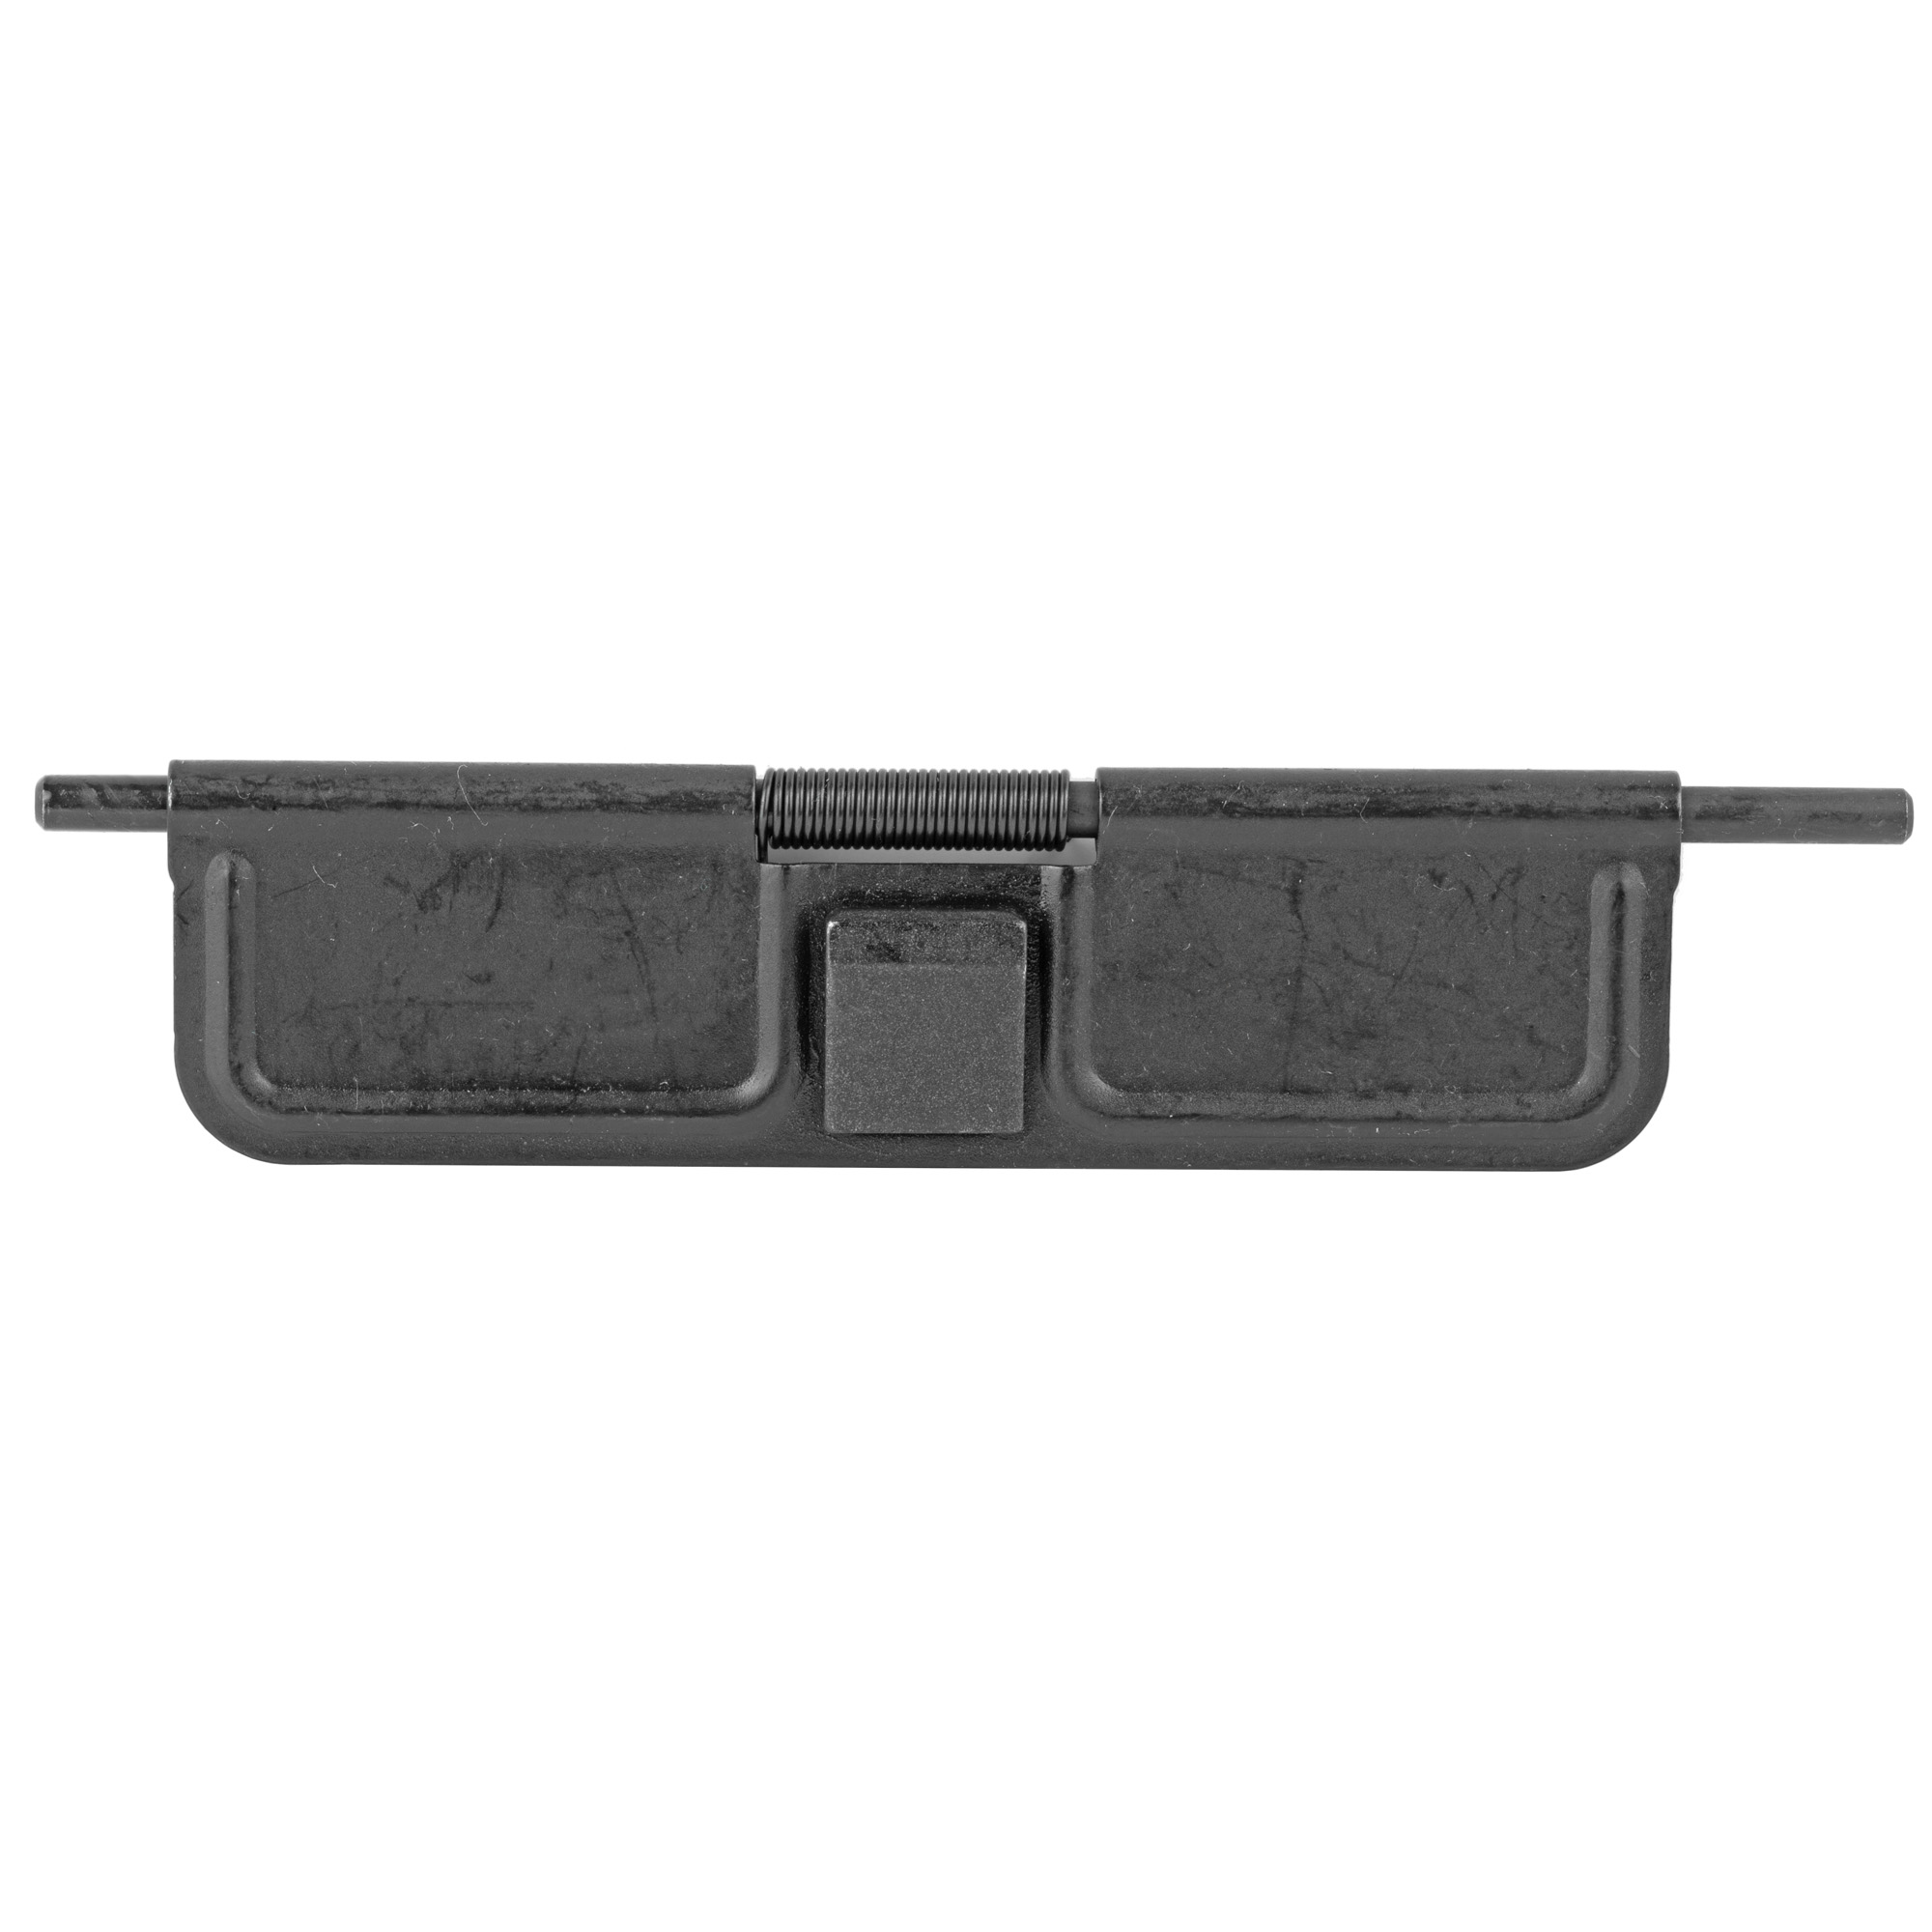 CMMG Ejection Port Cover Kit MK3 Ejection Port Rod and Spring Black Finish